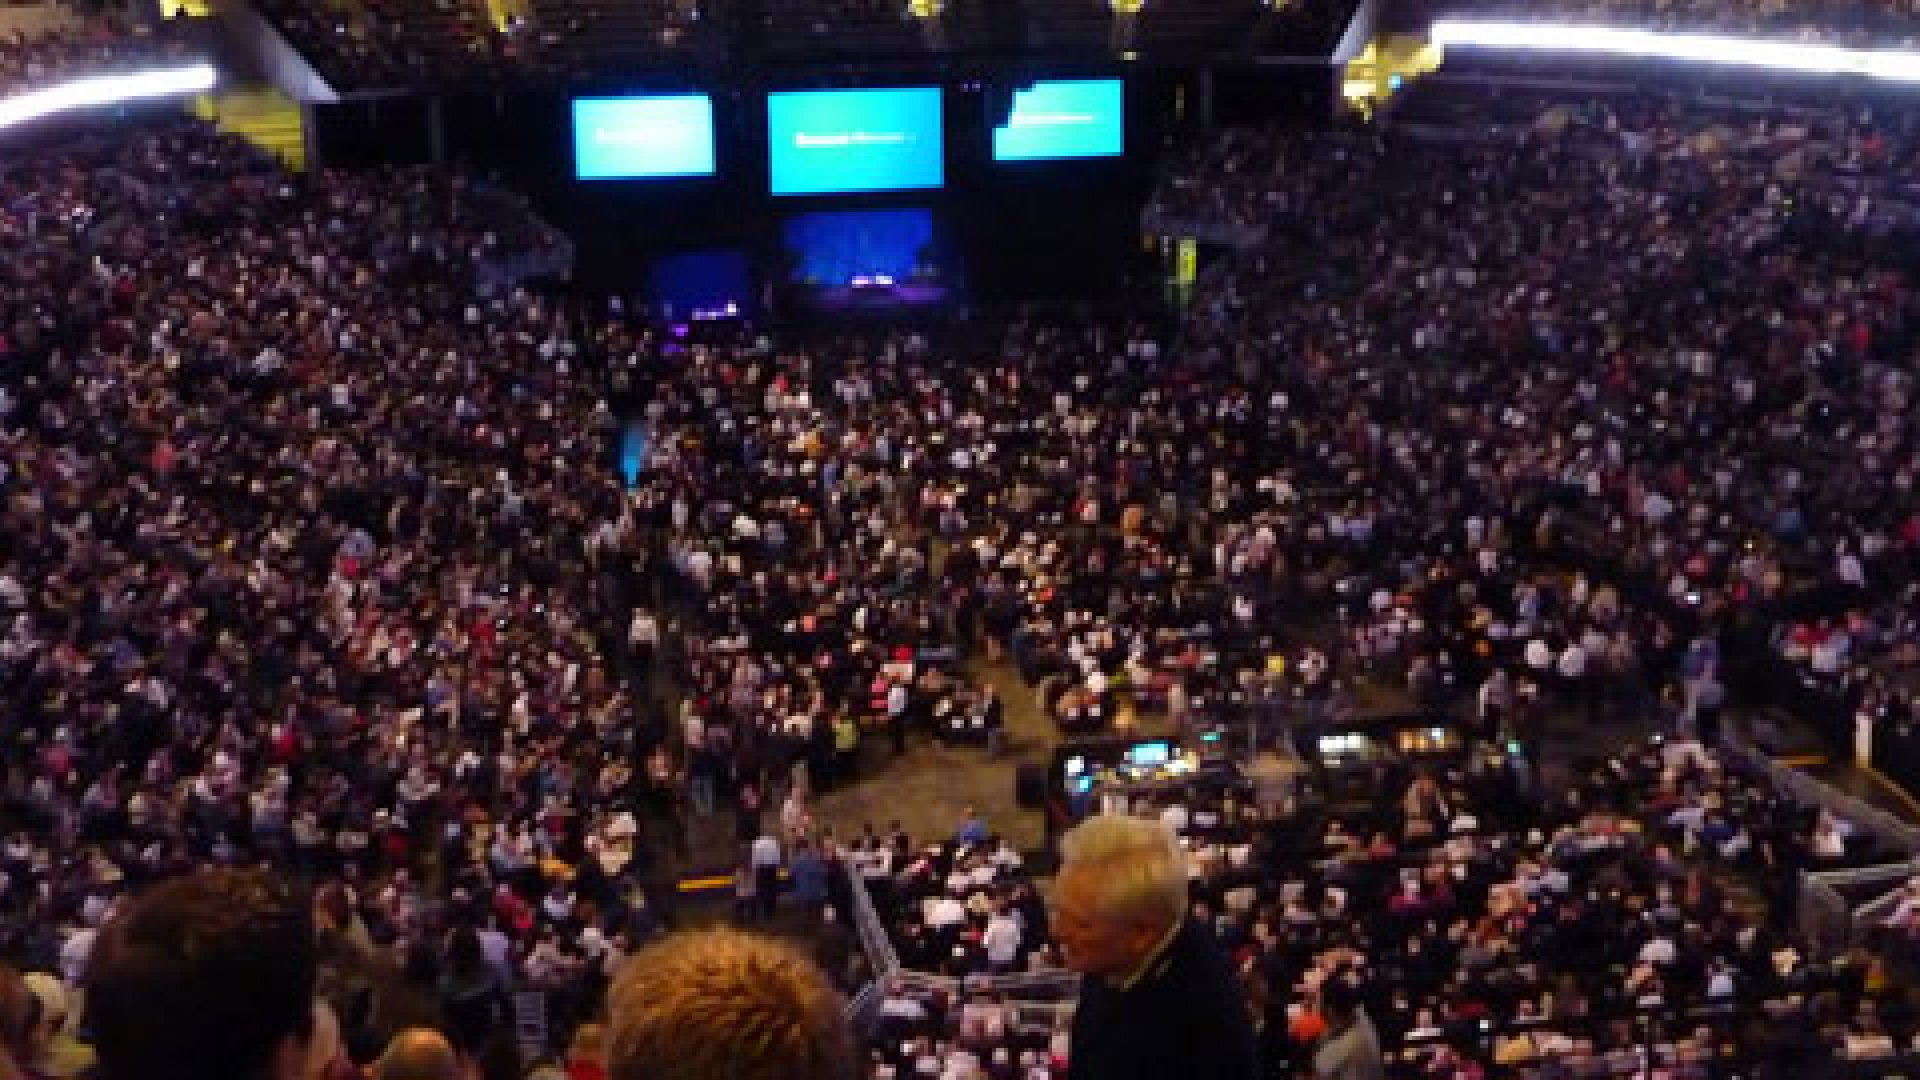 Crowds of shareholders gather for the Berkshire Hathaway annual meeting.